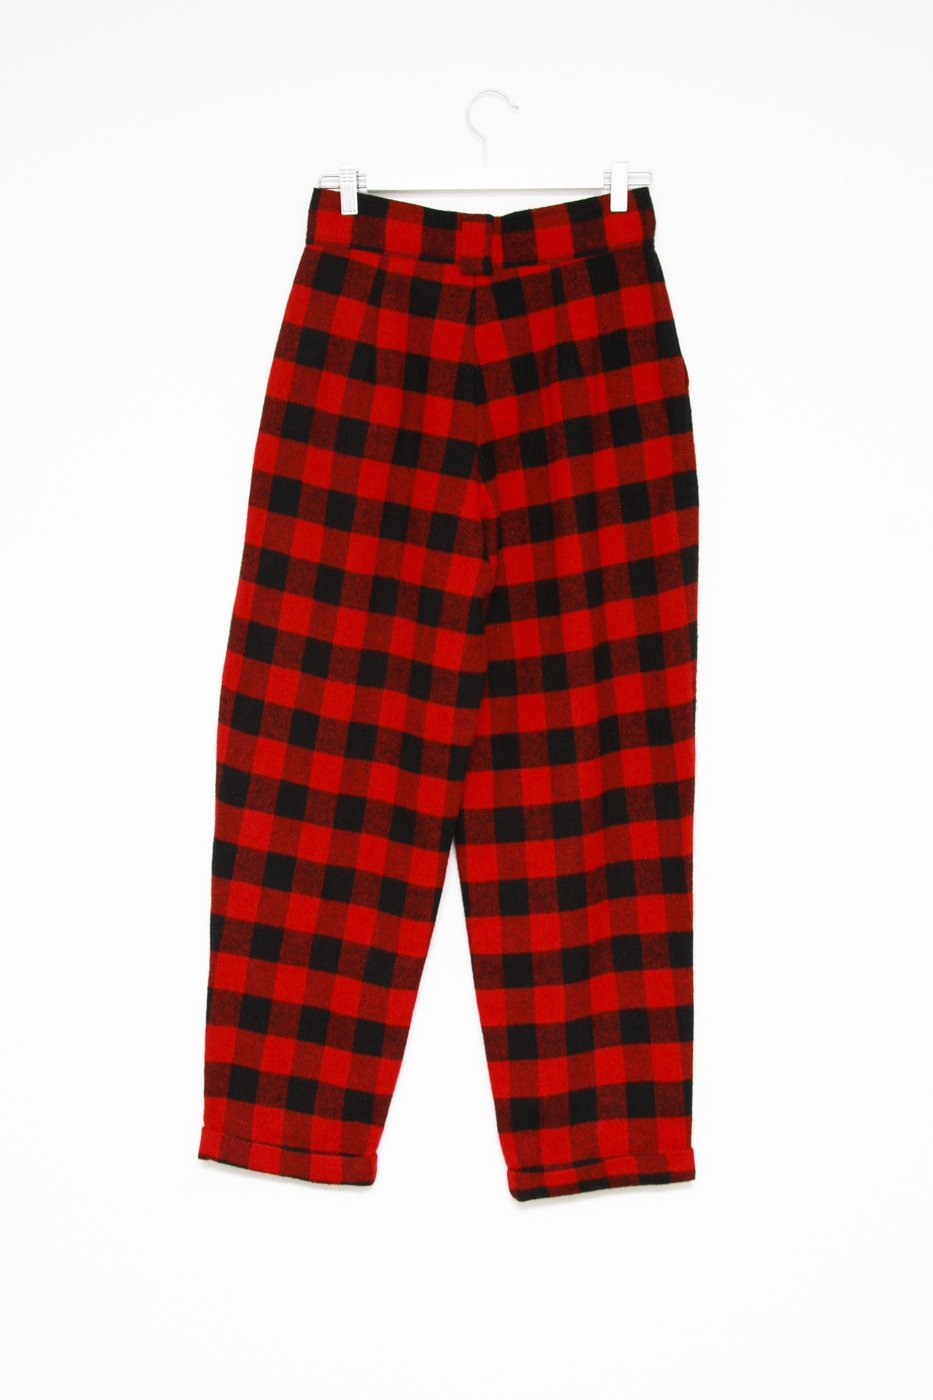 0366_CHECKED HIGH WAIST WARM PANTS